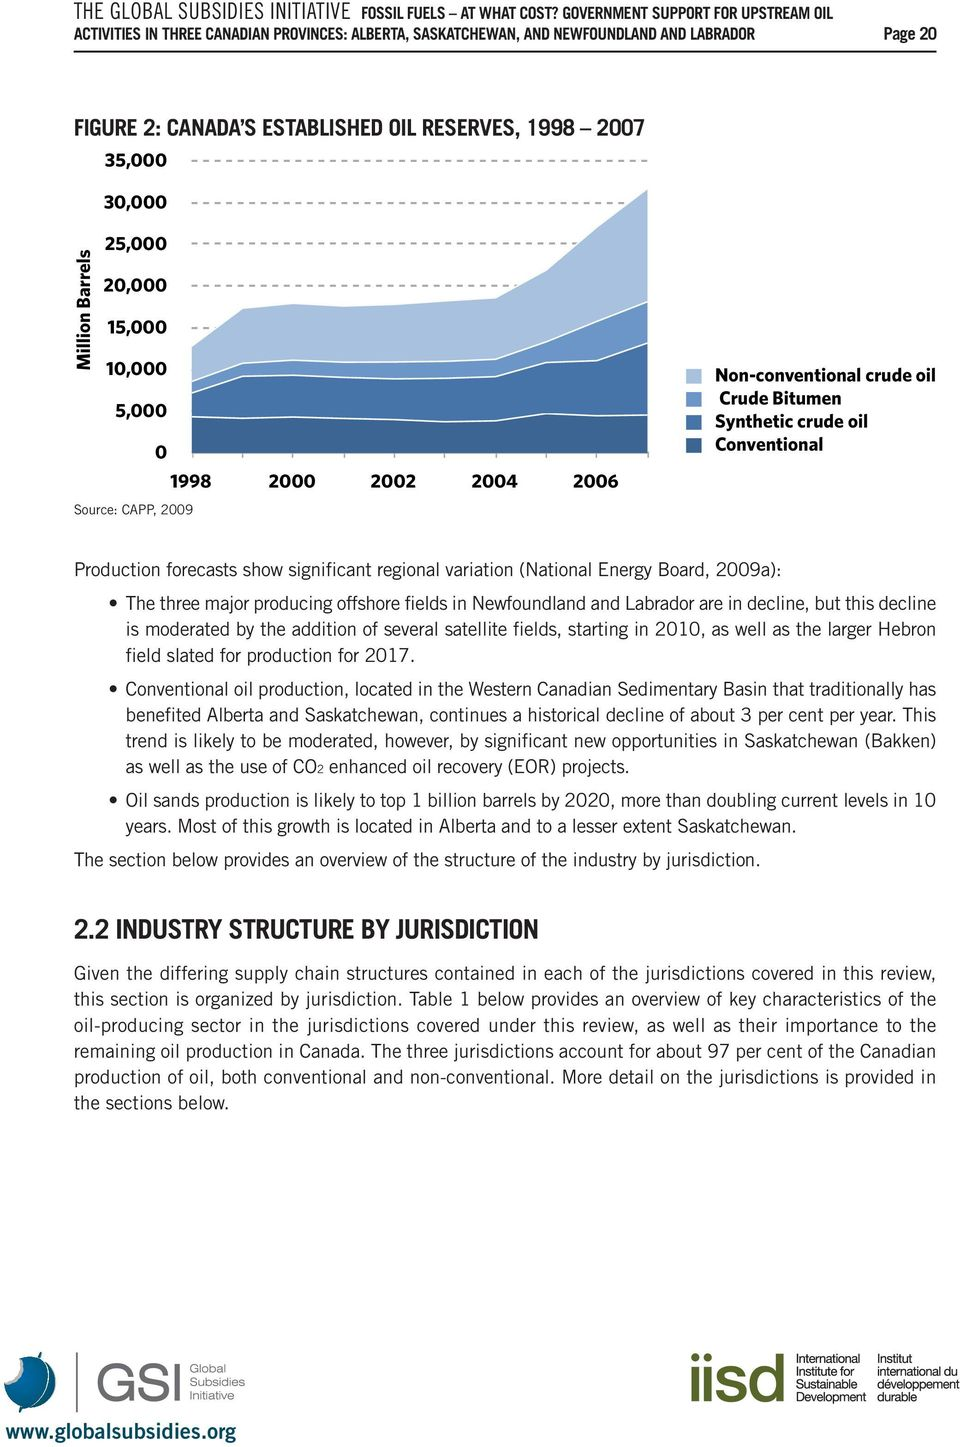 (National Energy Board, 2009a): The three major producing offshore fields in Newfoundland and Labrador are in decline, but this decline is moderated by the addition of several satellite fields,